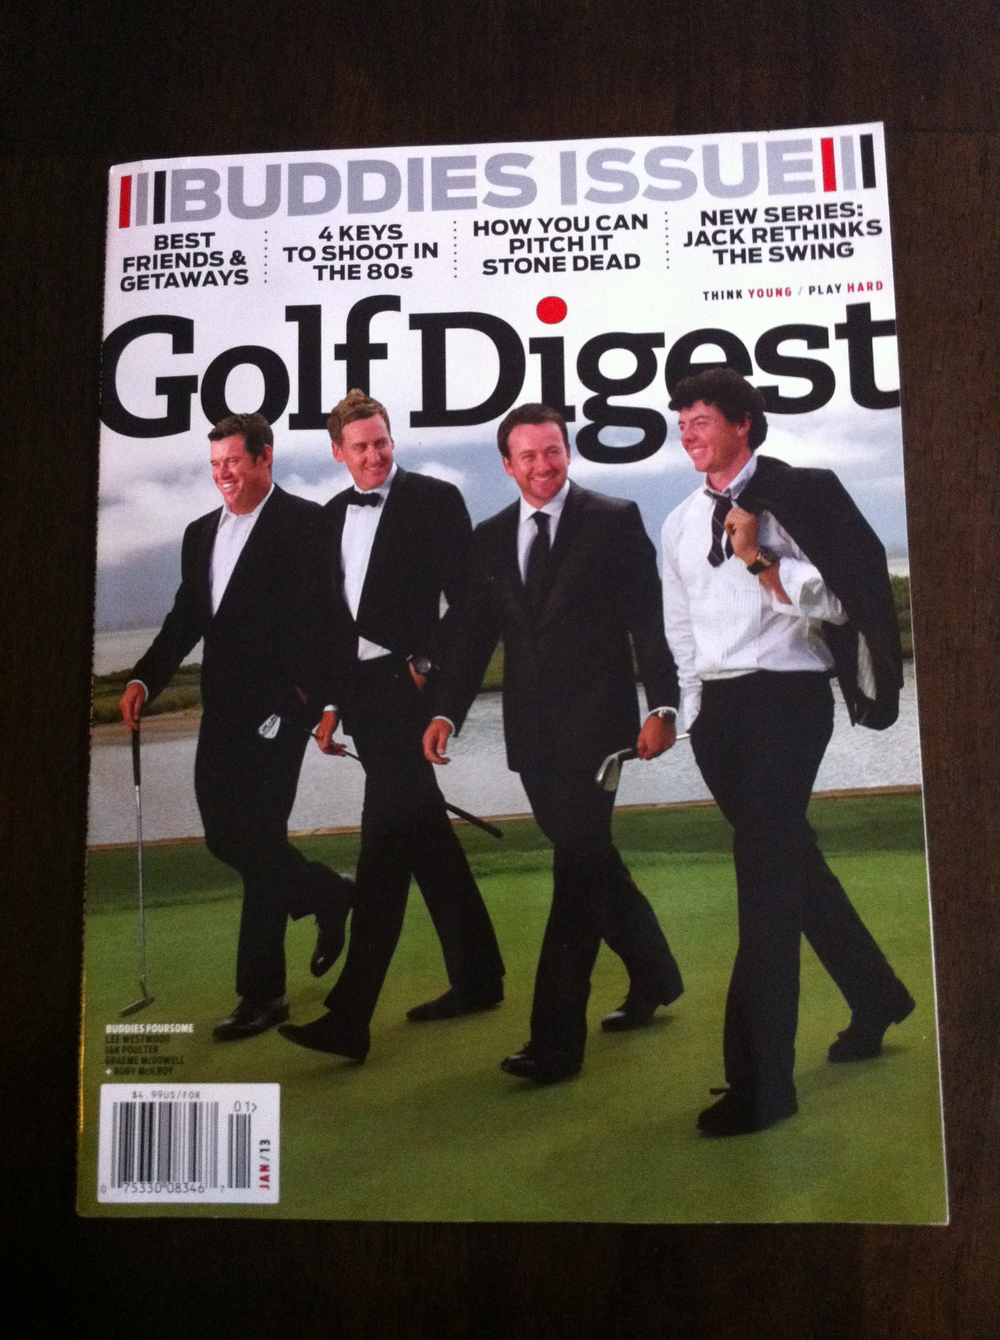 Golf Digest - Westwood, Poulter, McDowell, McIlroy